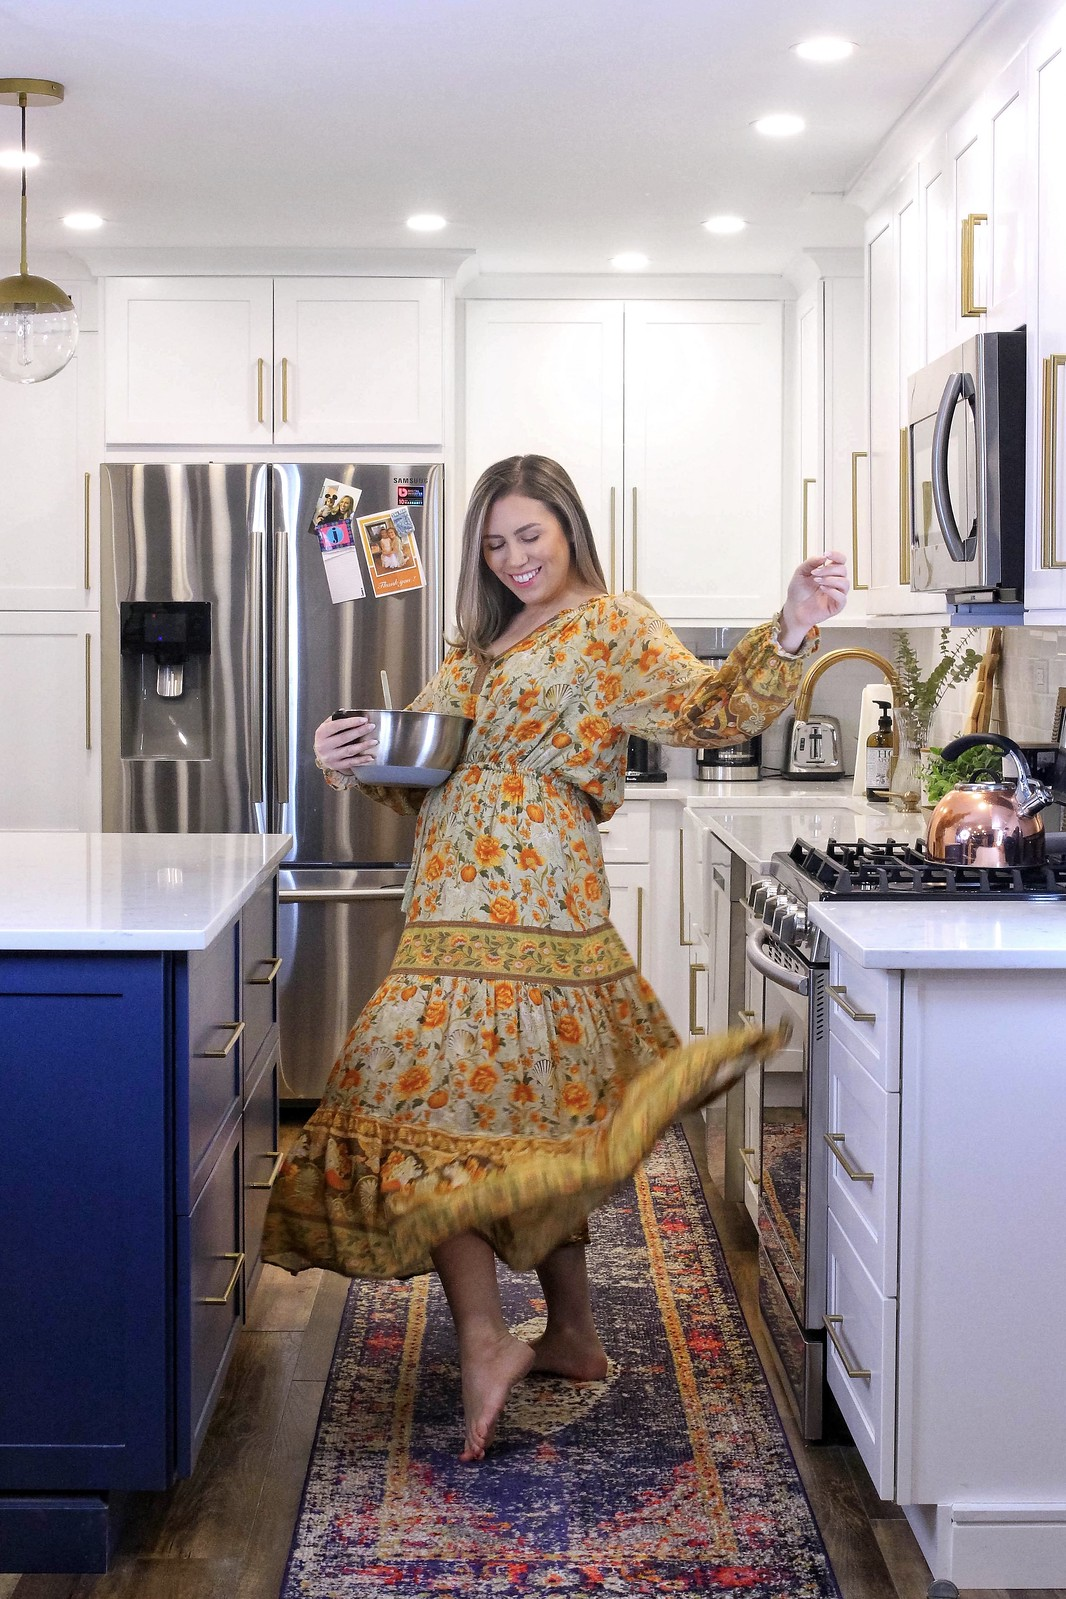 Spell & The Gypsy Seashell Flowing Maxi Dress | Comfortable Dresses | Cooking in the Kitchen | 10 Comfortable Quarantine Outfits That Aren't Sweatpants | Stay At Home Outfit Ideas | Shelter in Place Outfits